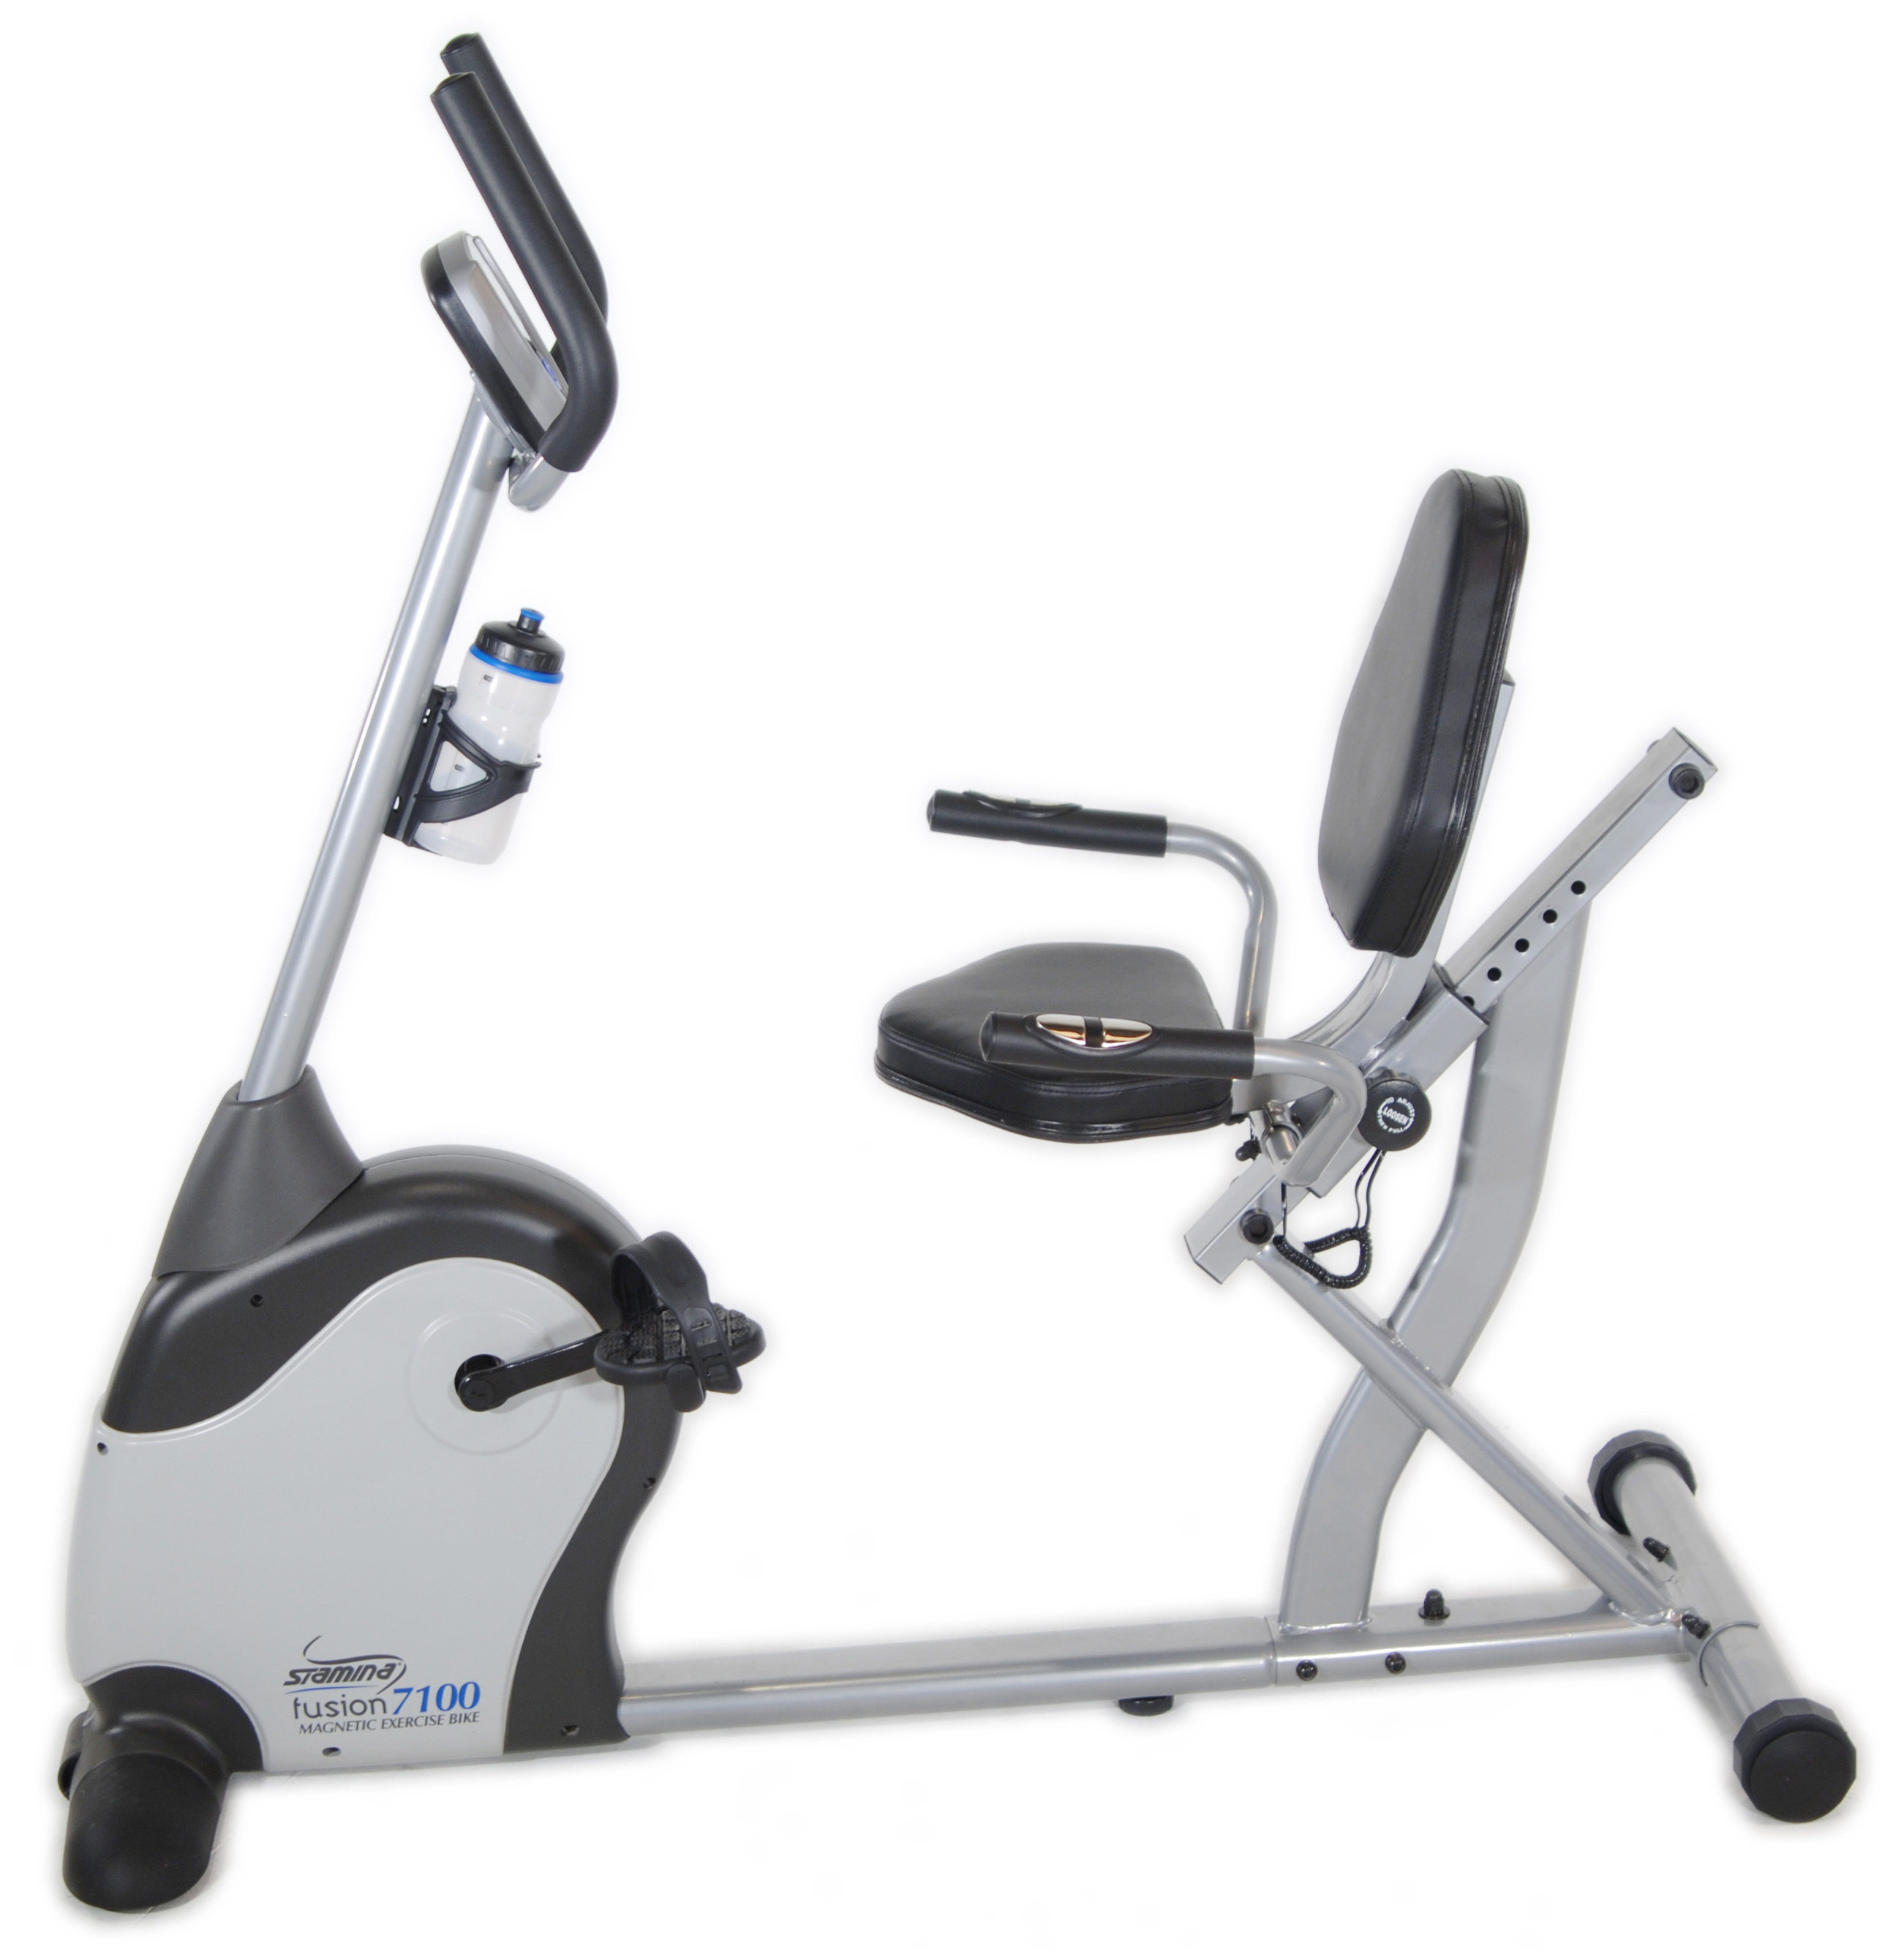 Stamina 7100 Magnetic Fusion Programmable Exercise Bike